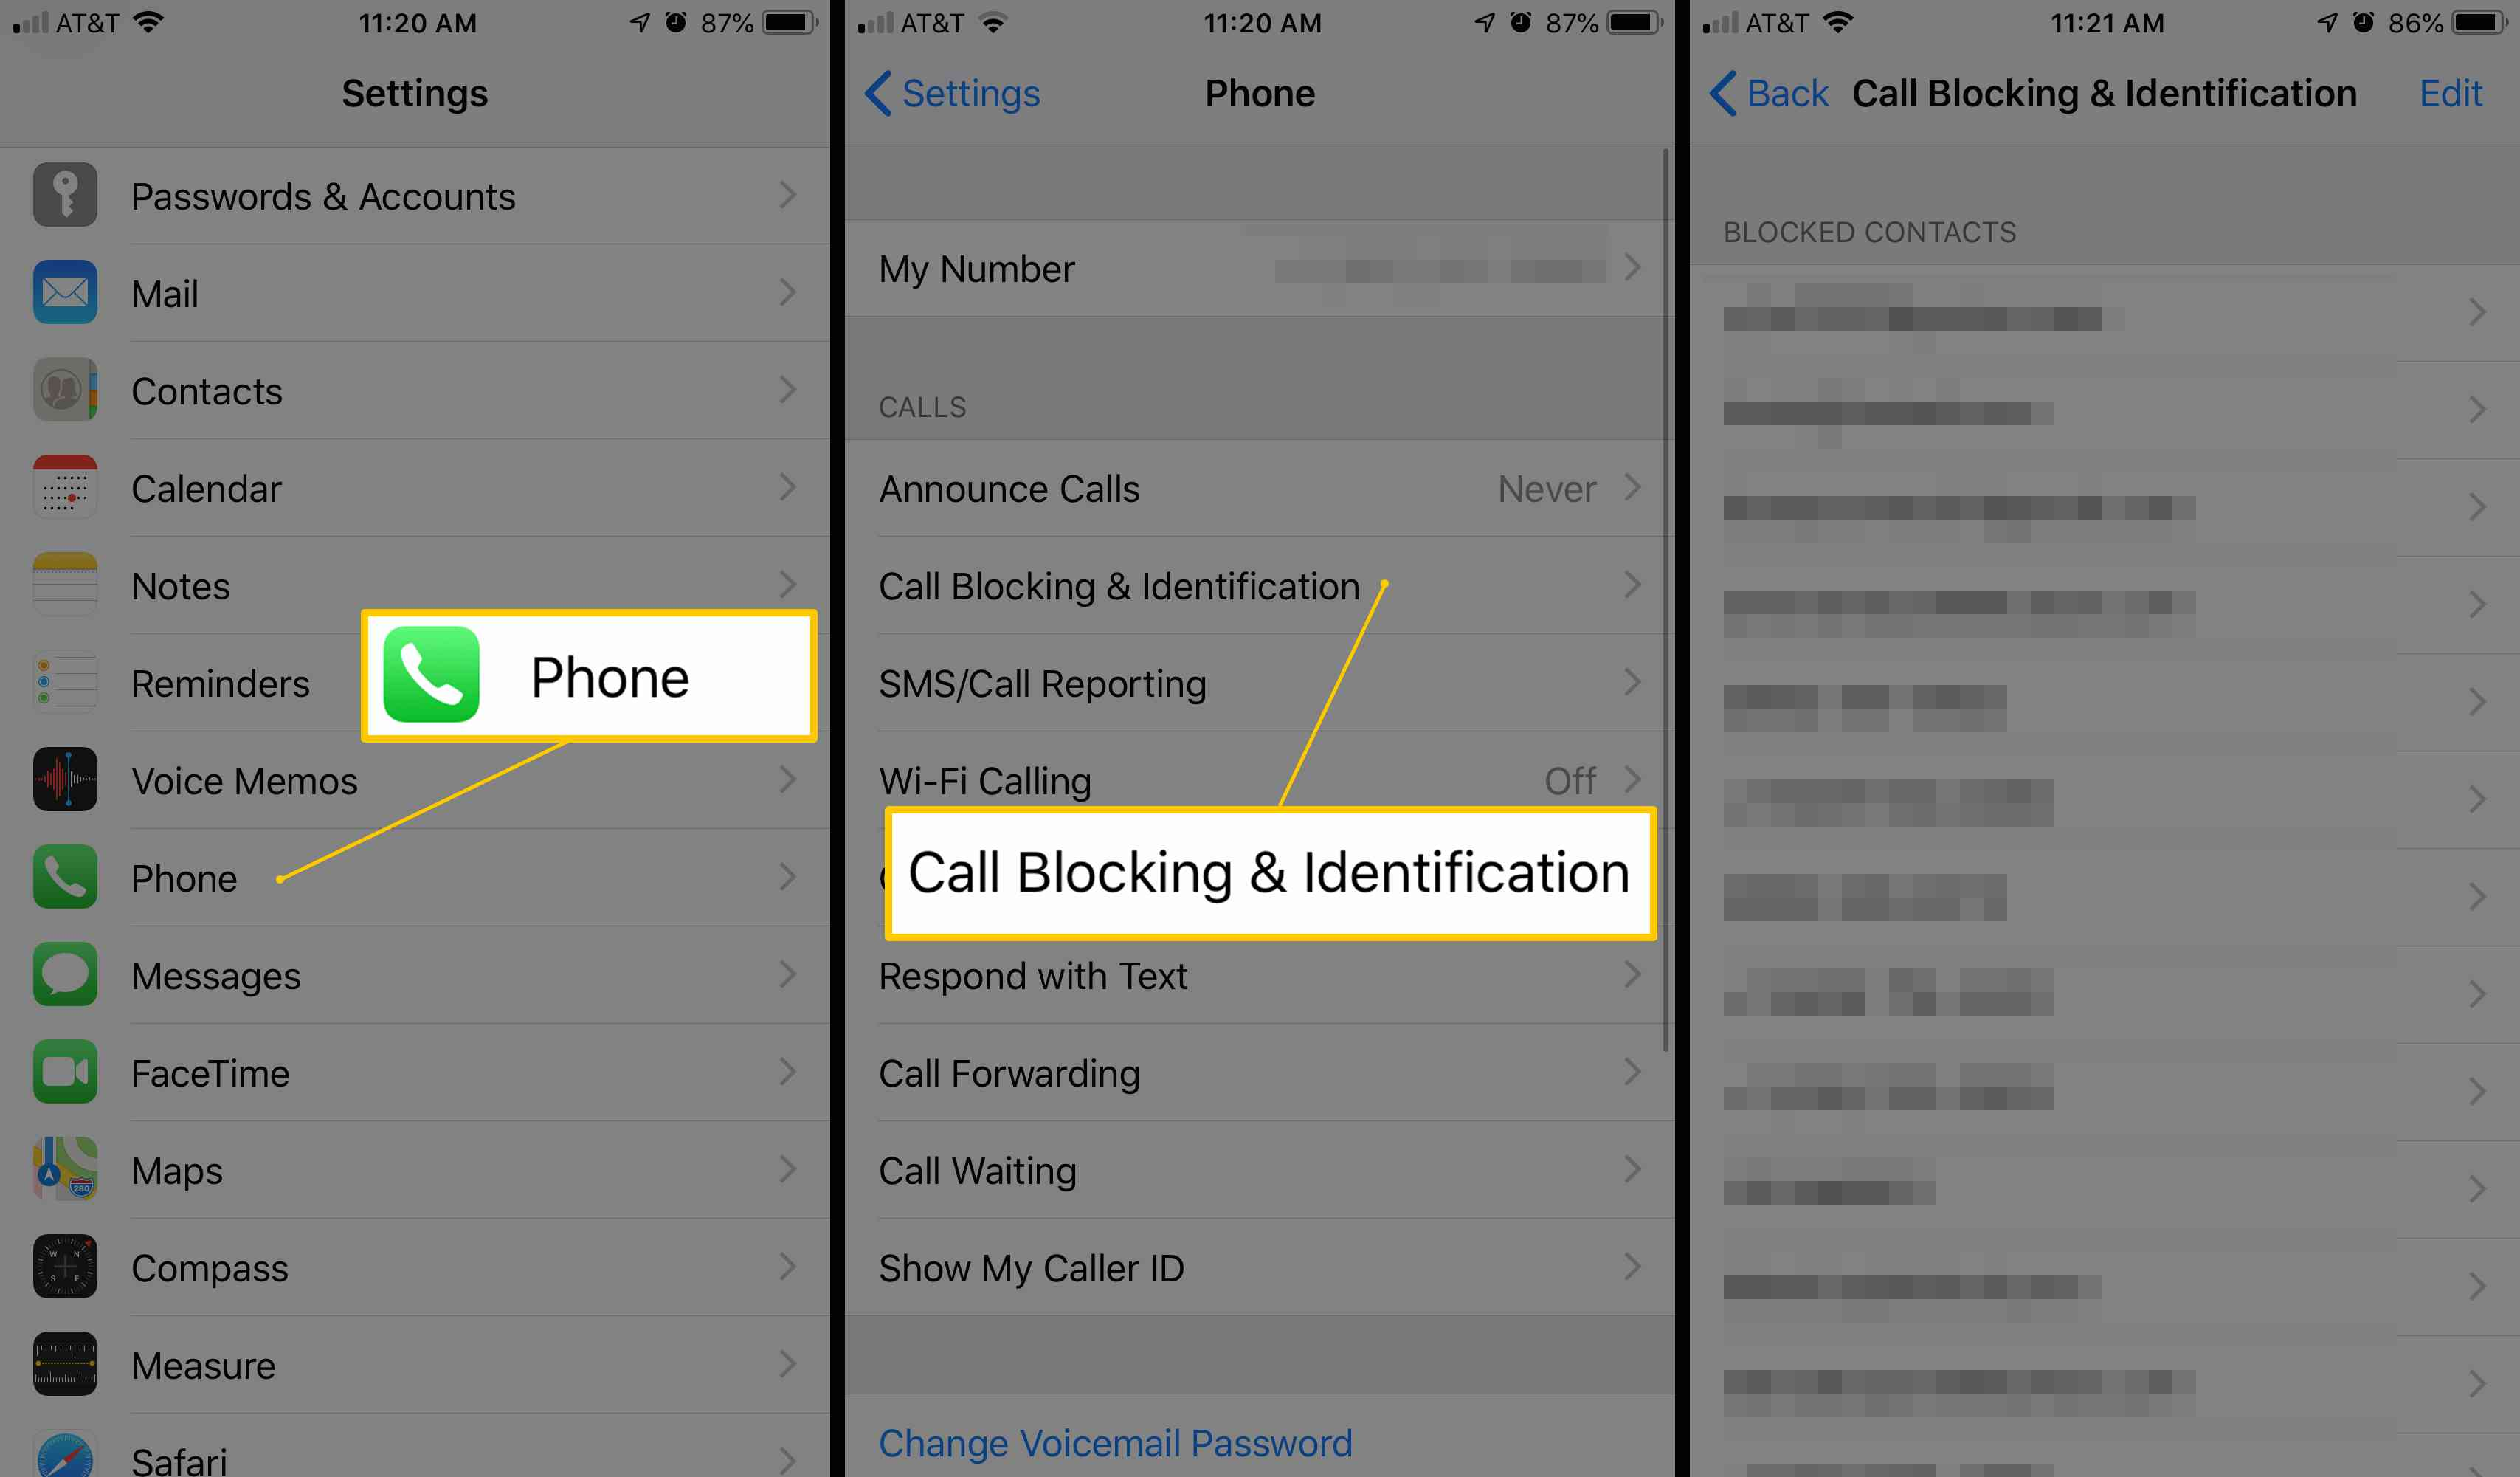 How to Fix the iPhone Not Ringing Problem